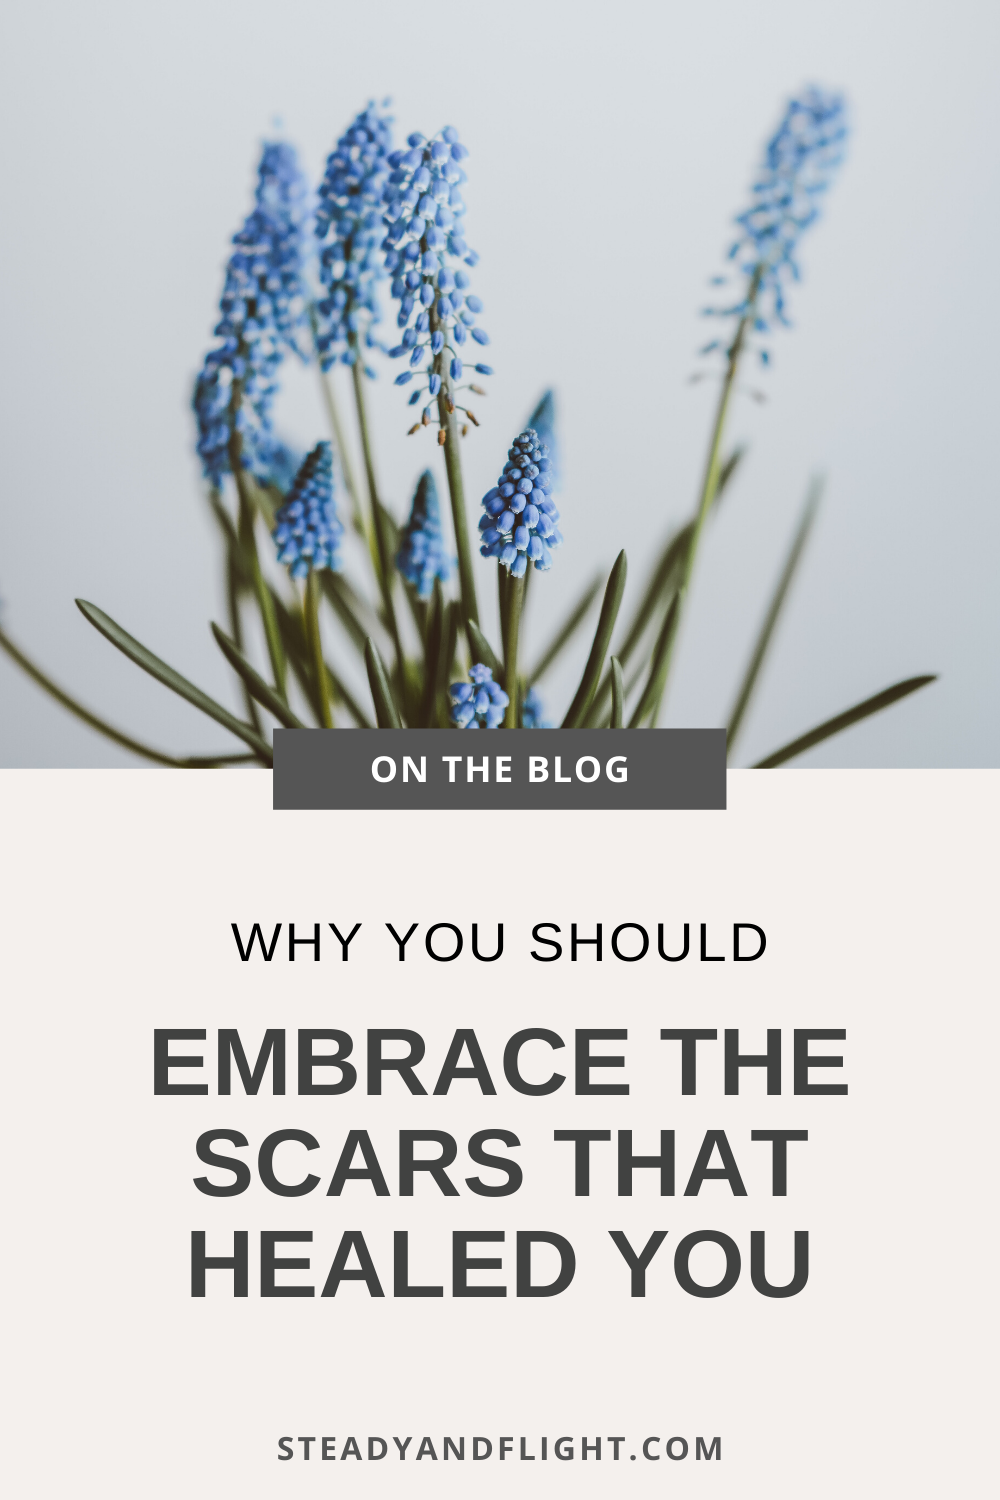 Why you should embrace the scars that healed you.